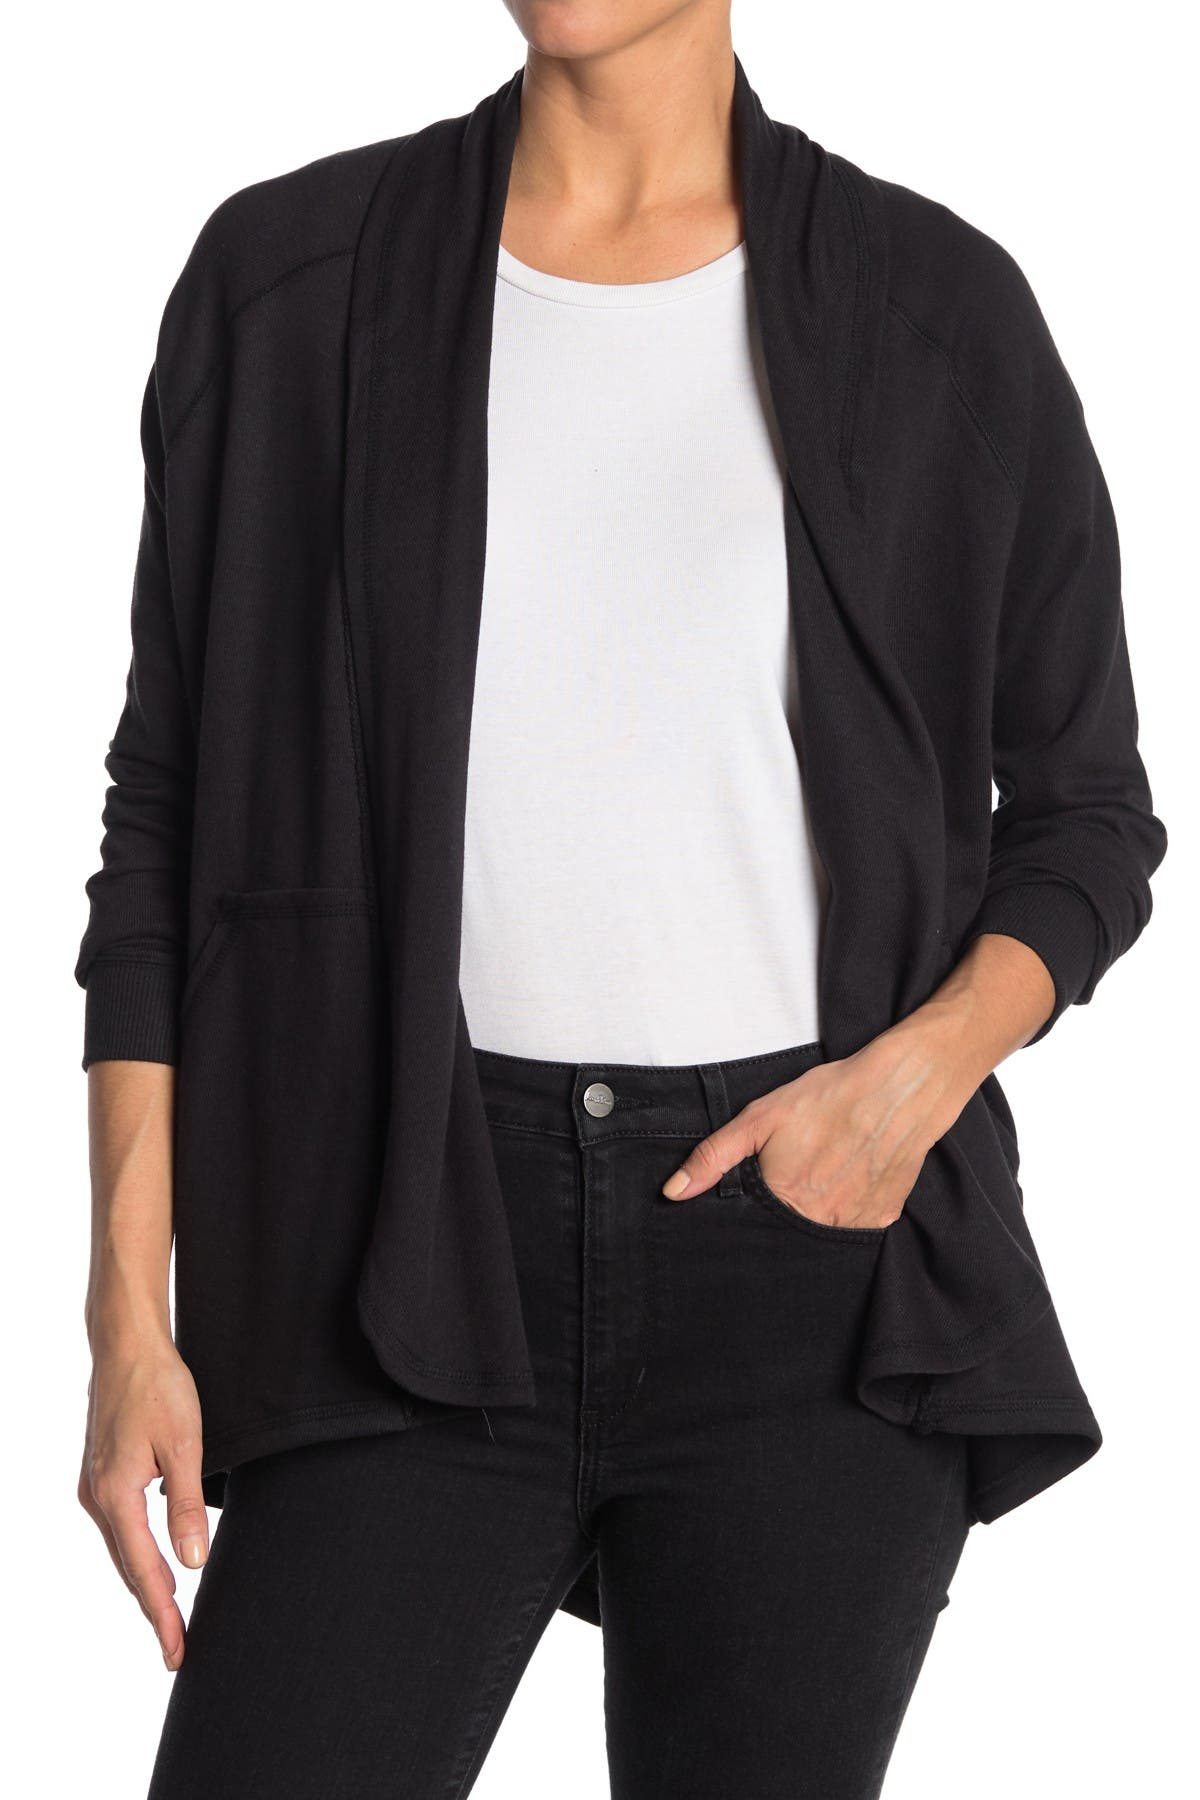 Image of Alternative Zen Lounge Cardigan